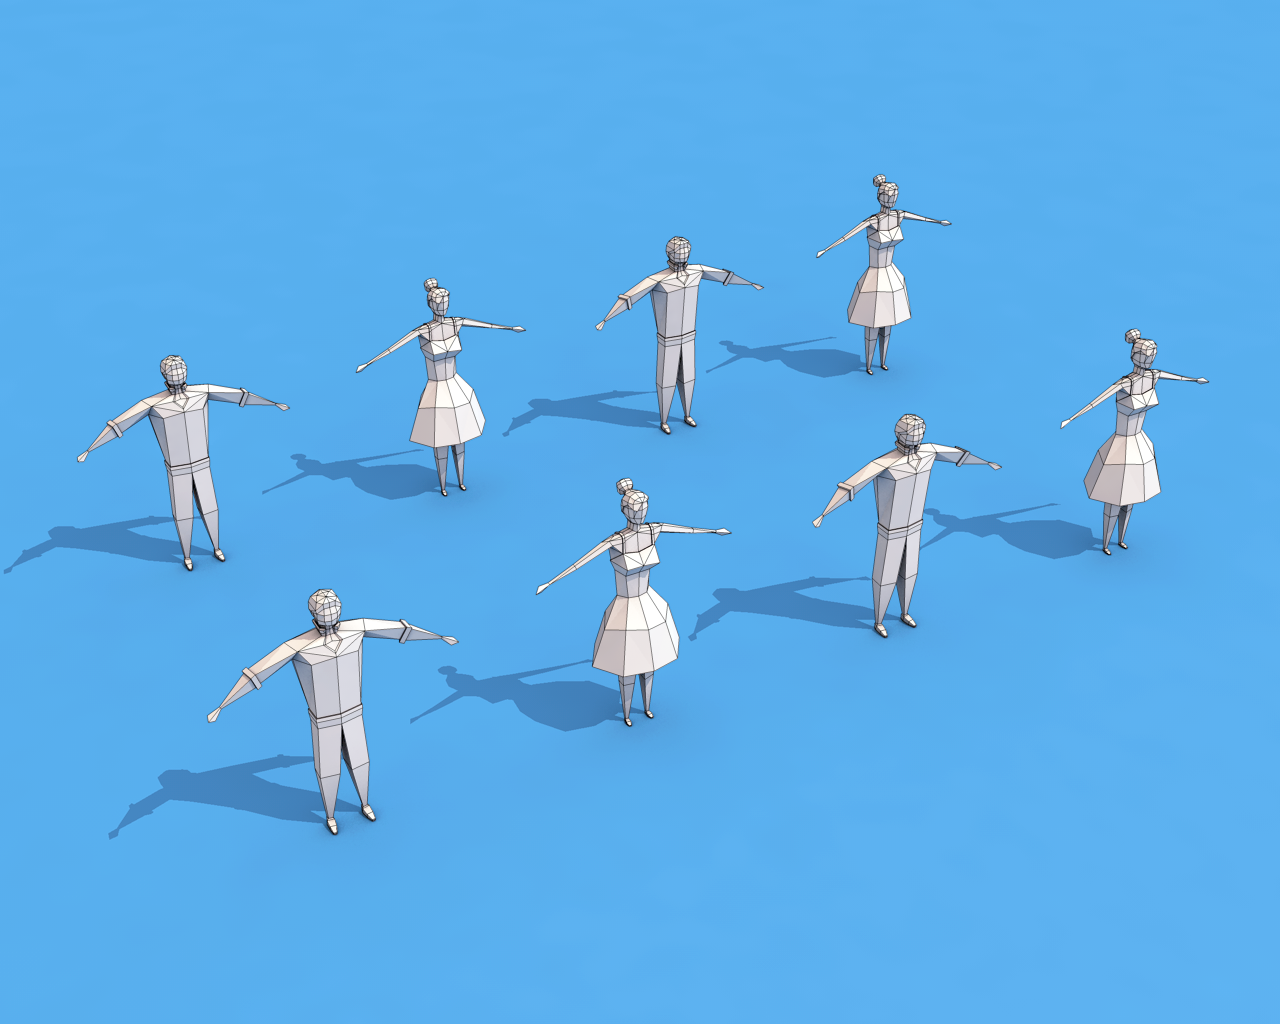 Low Poly Rigged Characters 3D Model in Cartoon 3DExport